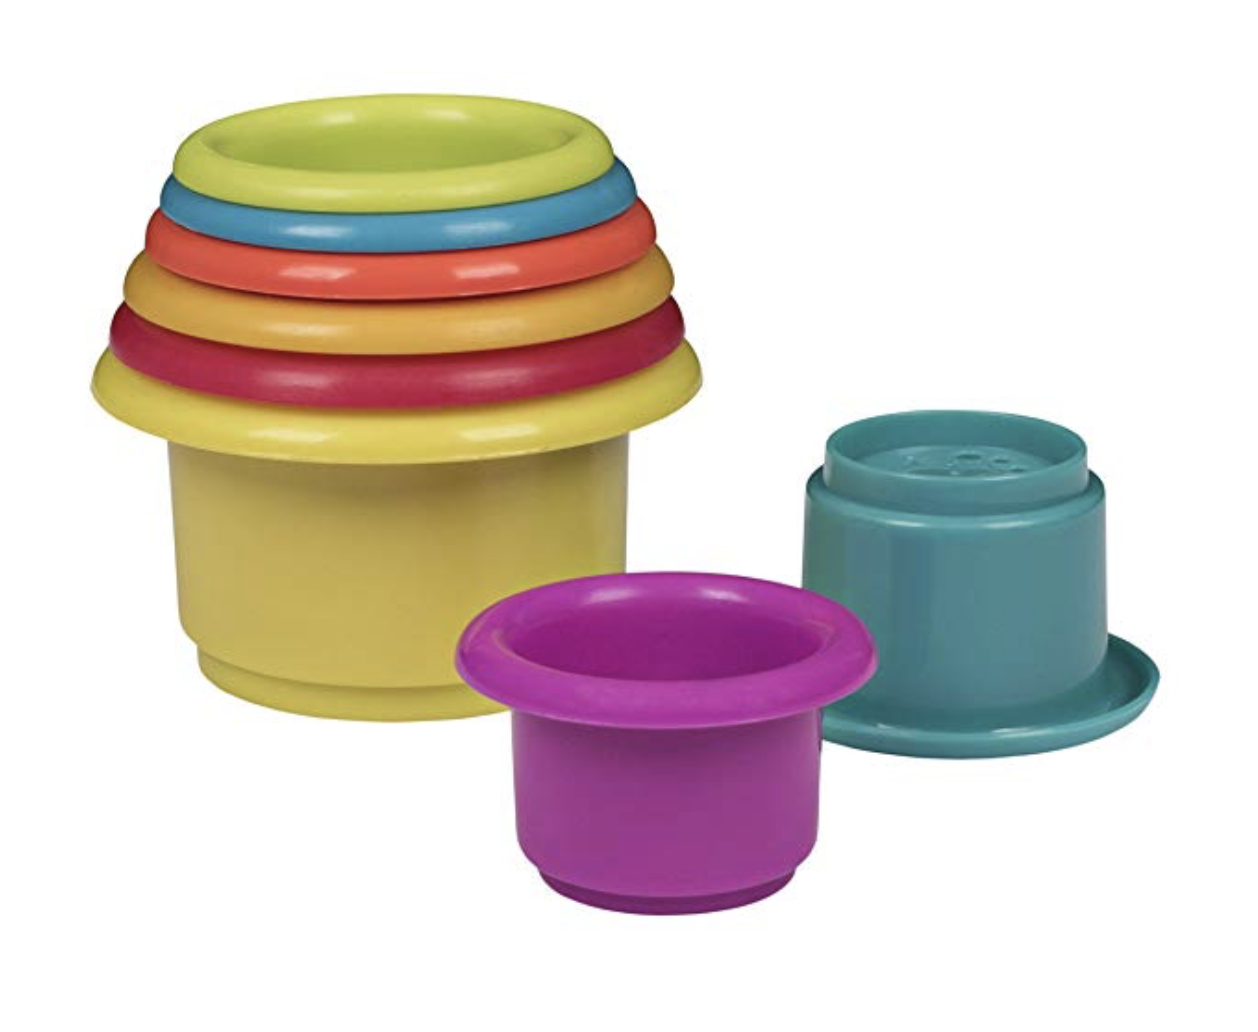 Stacking Cups - Our favorite baby products for months 10-12